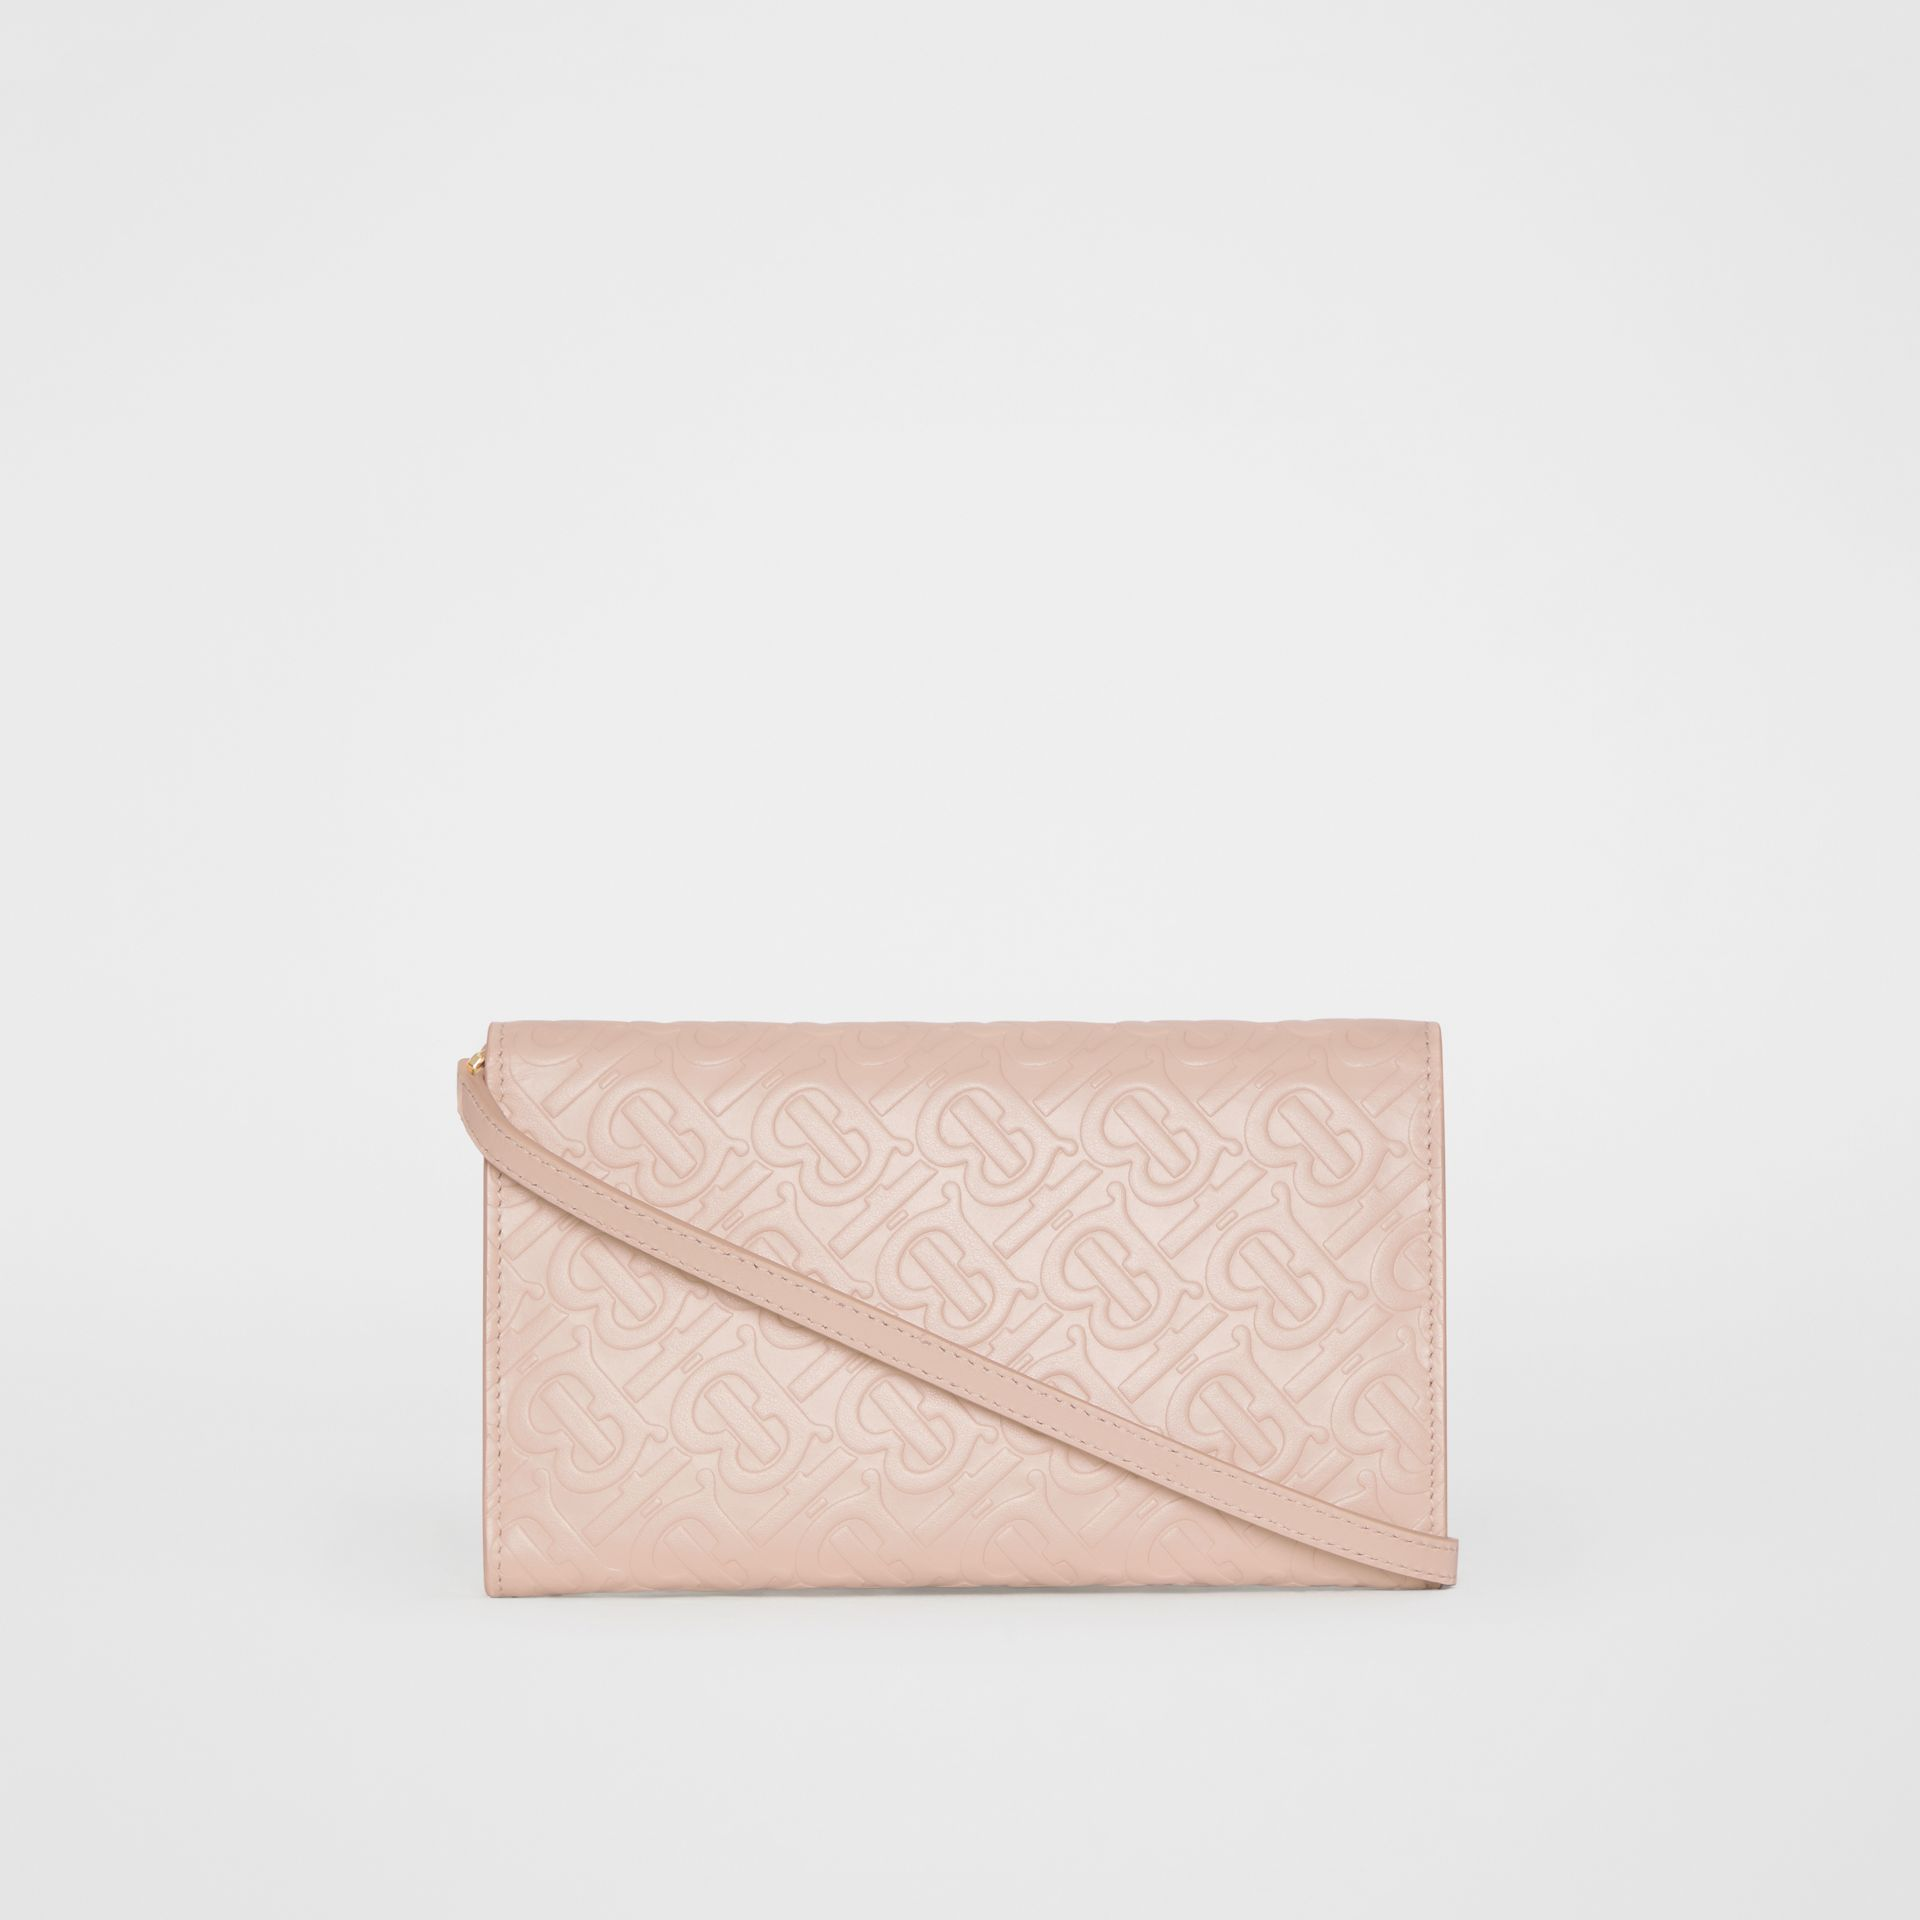 Portefeuille en cuir Monogram et sangle amovible (Beige Rose) - Femme | Burberry - photo de la galerie 8